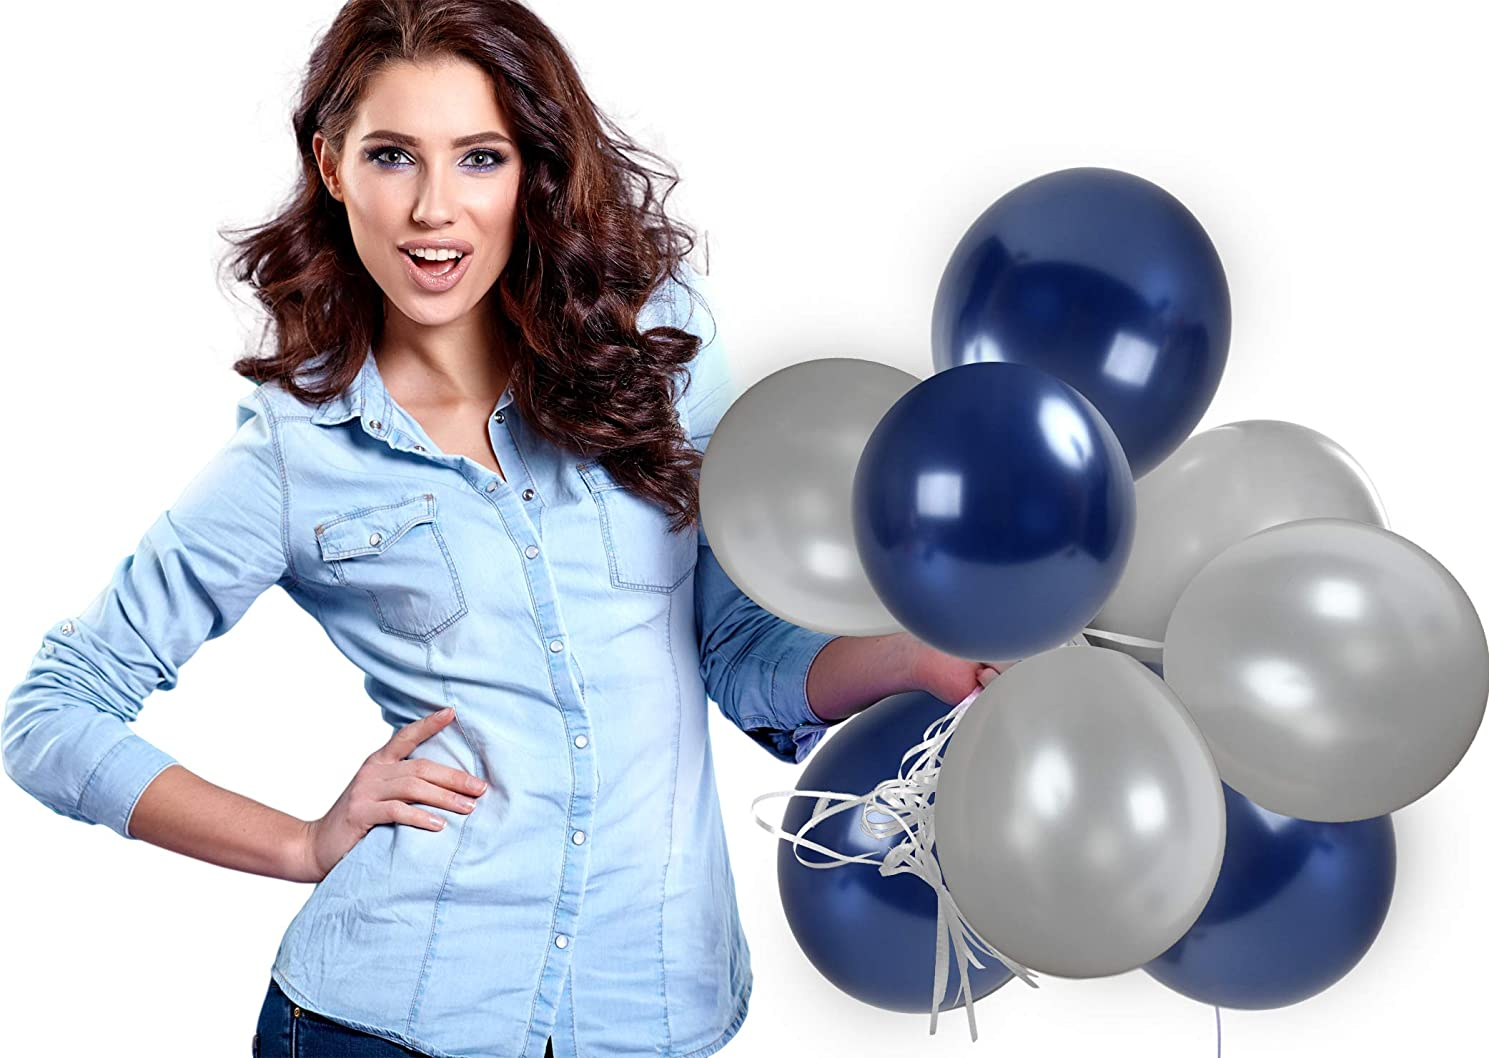 Treasures Gifted 4th of July Party Kit Silver and Navy Blue Metallic Balloons Pack of 72 and 65 Yards Curling Ribbons for Birthday Graduation Bachelorette Bridal Shower Party Supplies